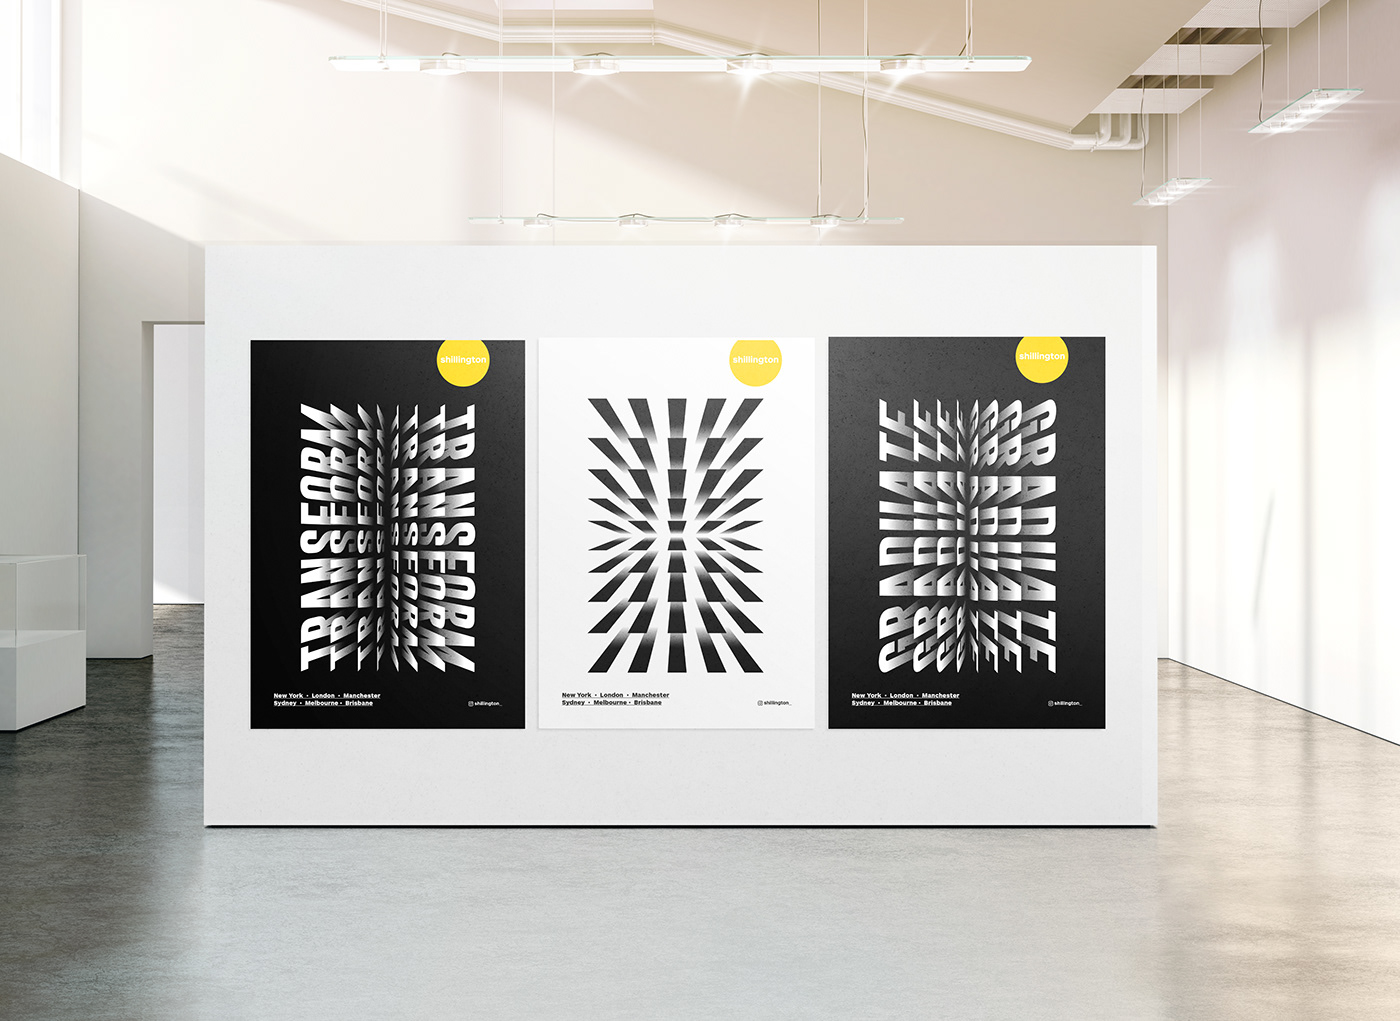 Poster Design in a gallery